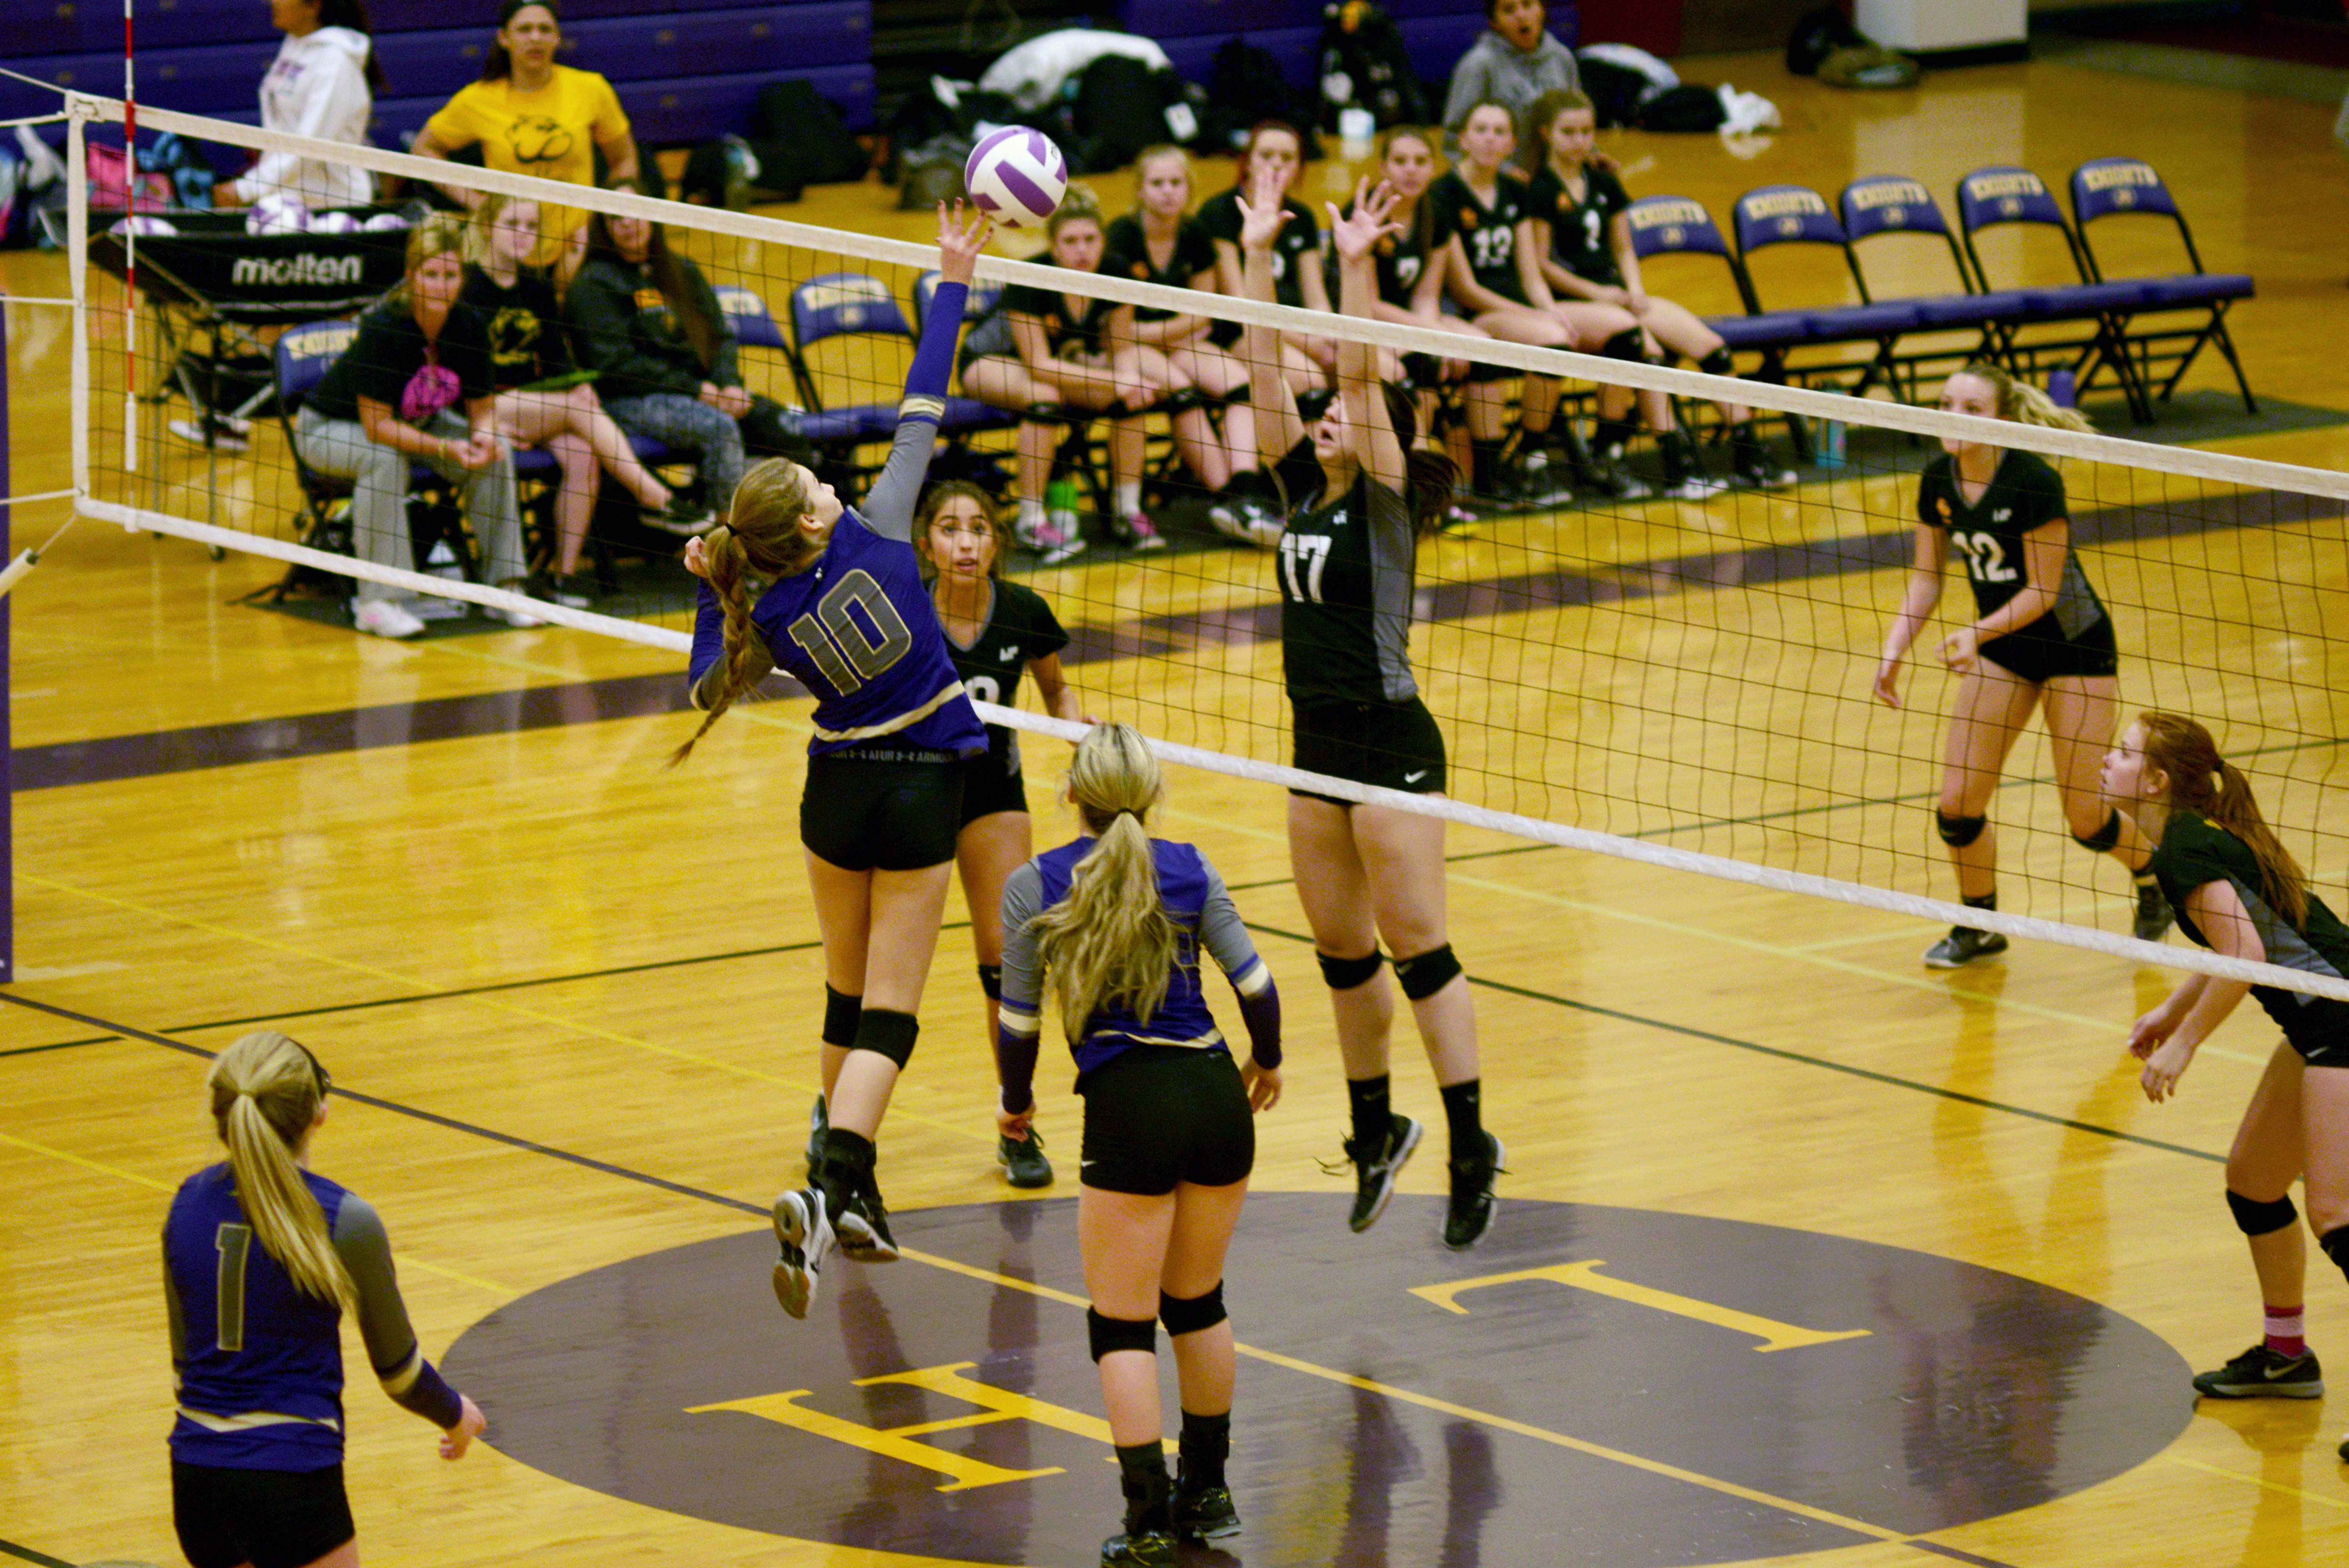 Mixed Bag At LHHS Volleyball Match